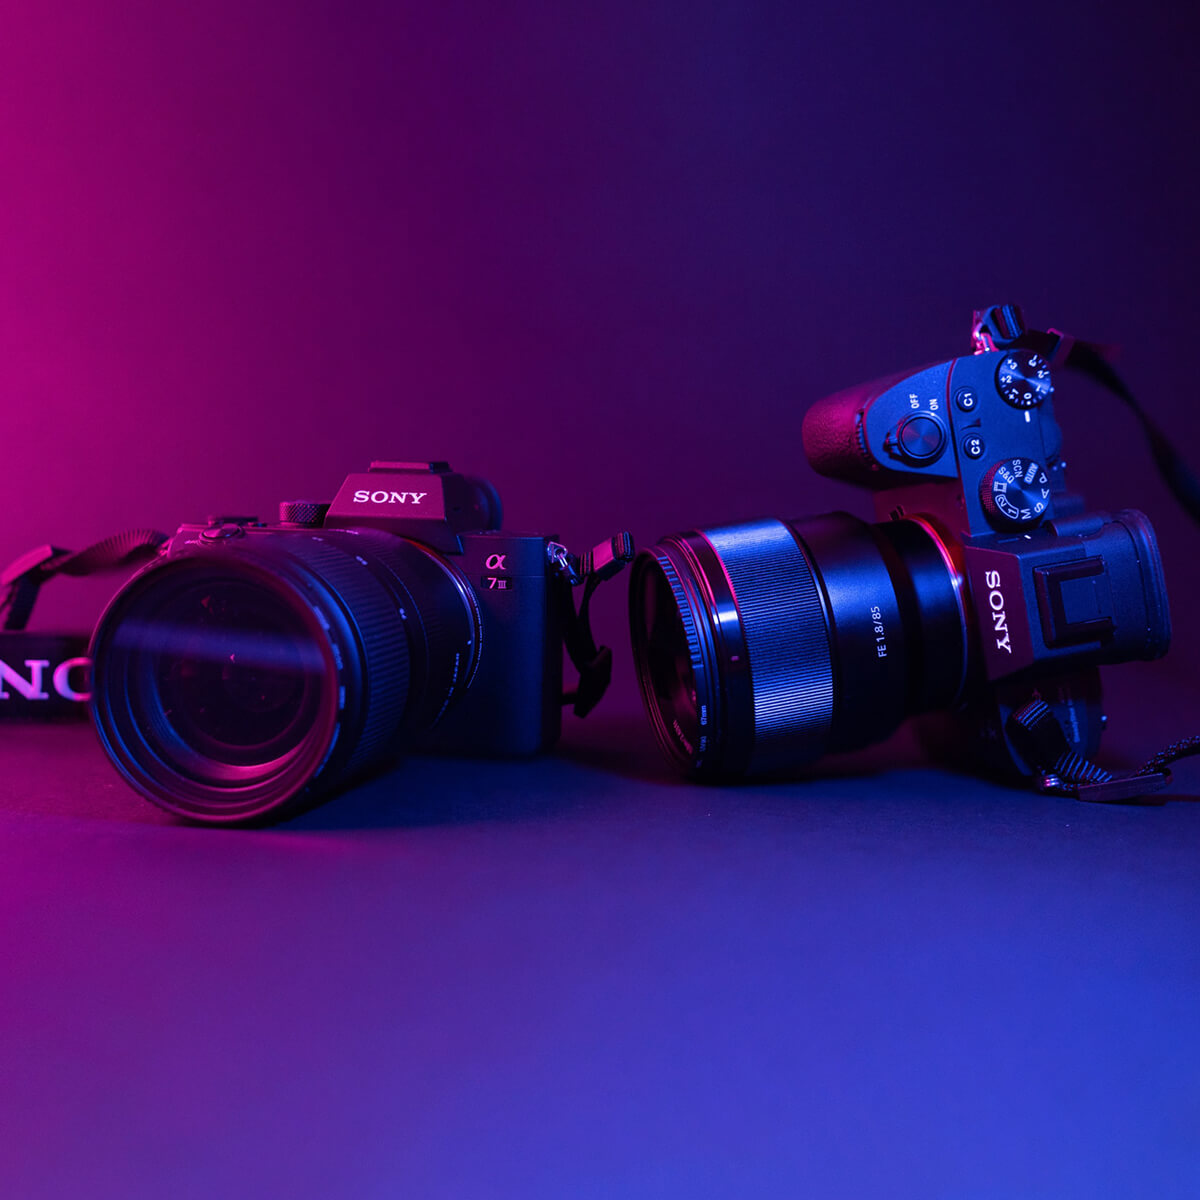 Best Sony Camera for Car Photography